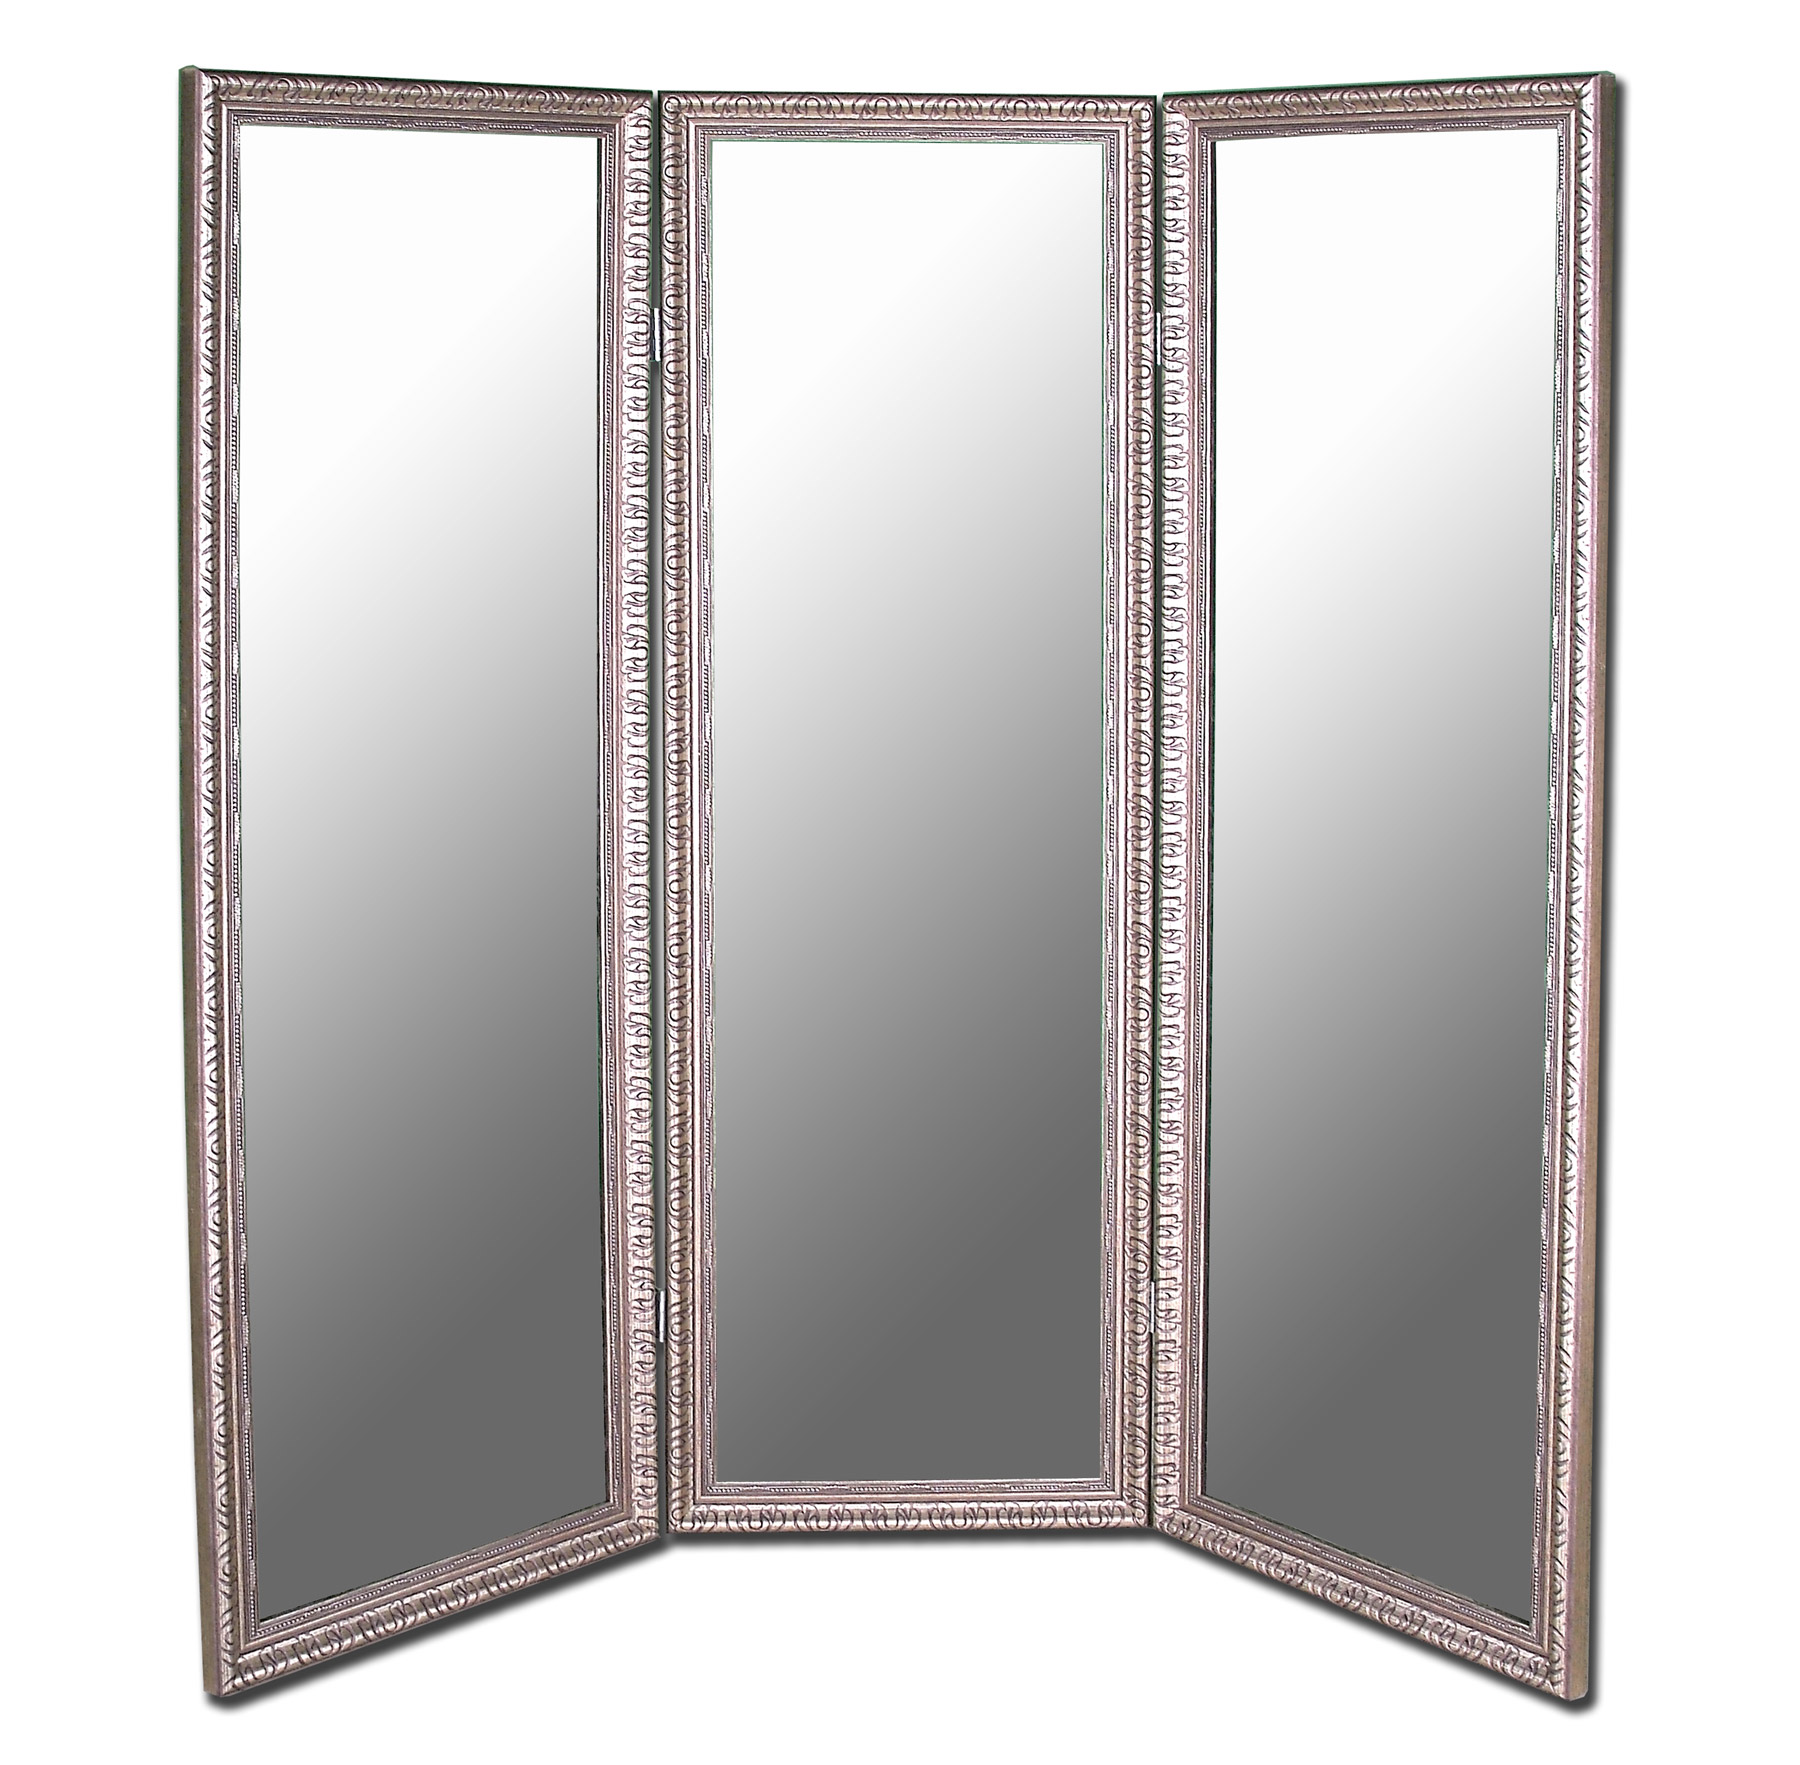 Hitchcock Butterfield 6702 Pmrd Antique Silver 3 Panel Mirror